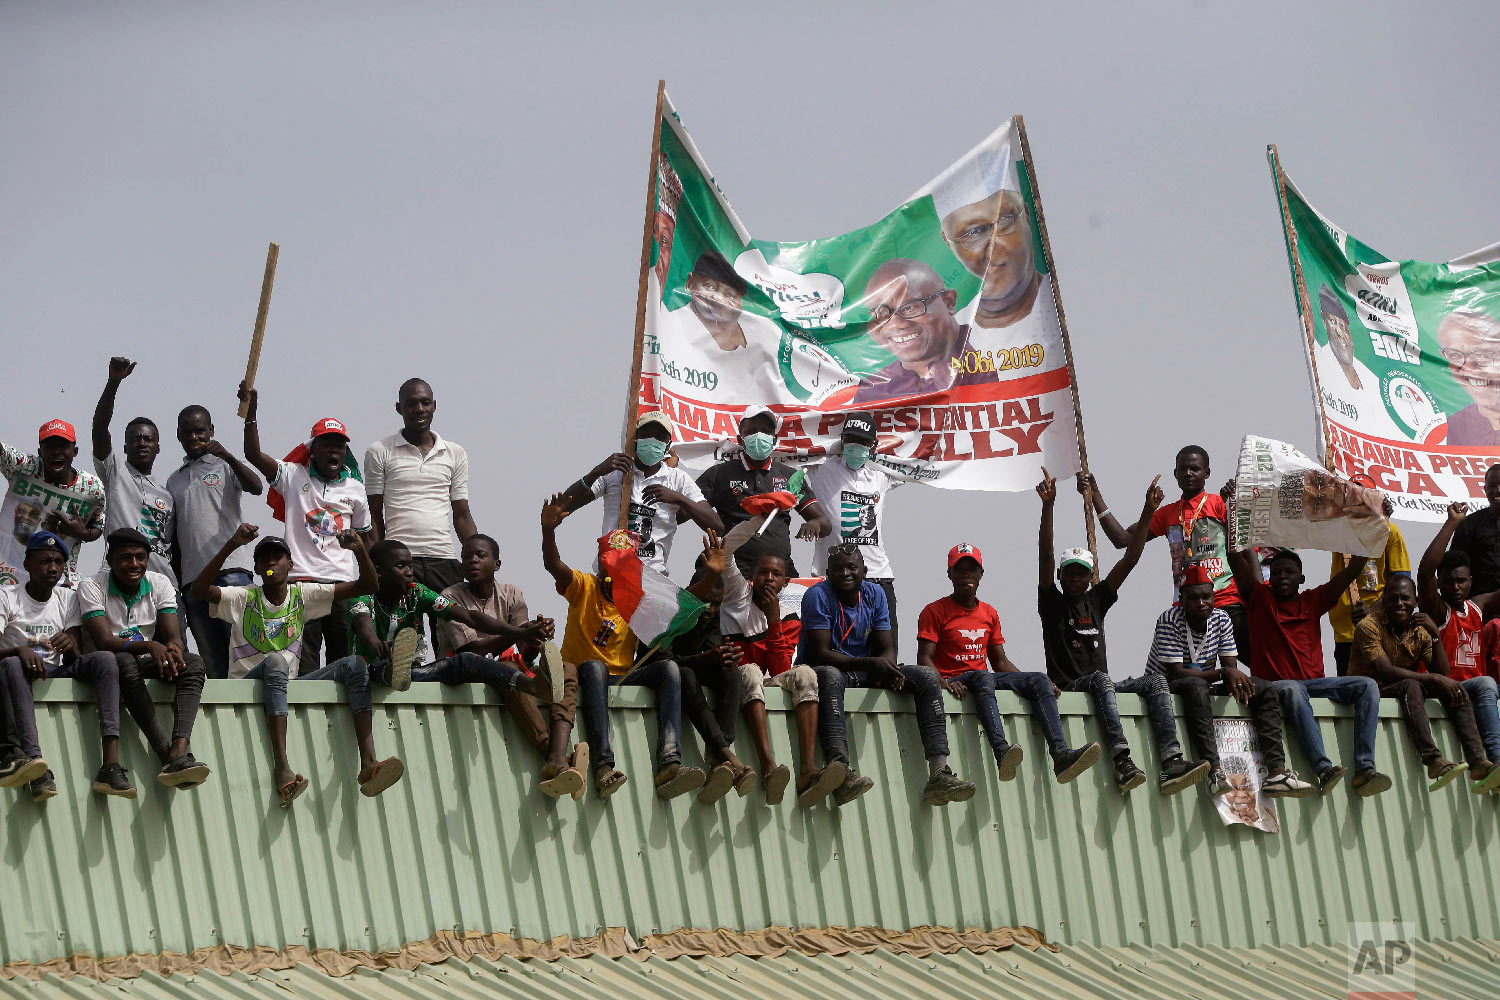 Supporters of Nigerian presidential candidate Atiku Abubakar, of the People's Democratic Party attend an election campaign rally on the street in Yola, Nigeria, Feb. 14, 2019. (AP Photo/Sunday Alamba)